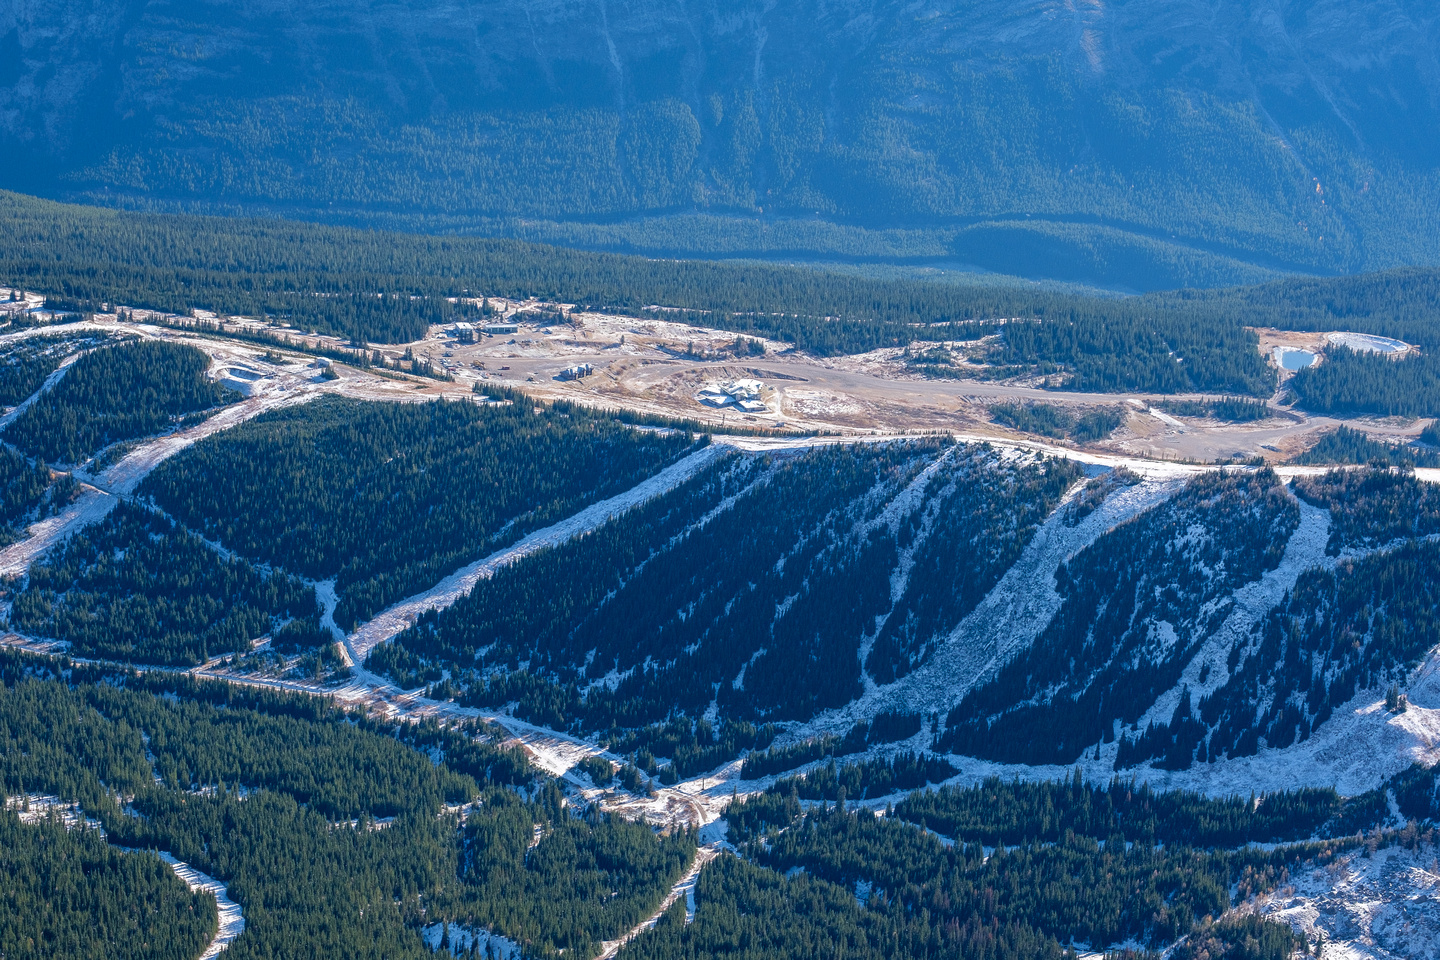 View to the old Fortress ski resort.